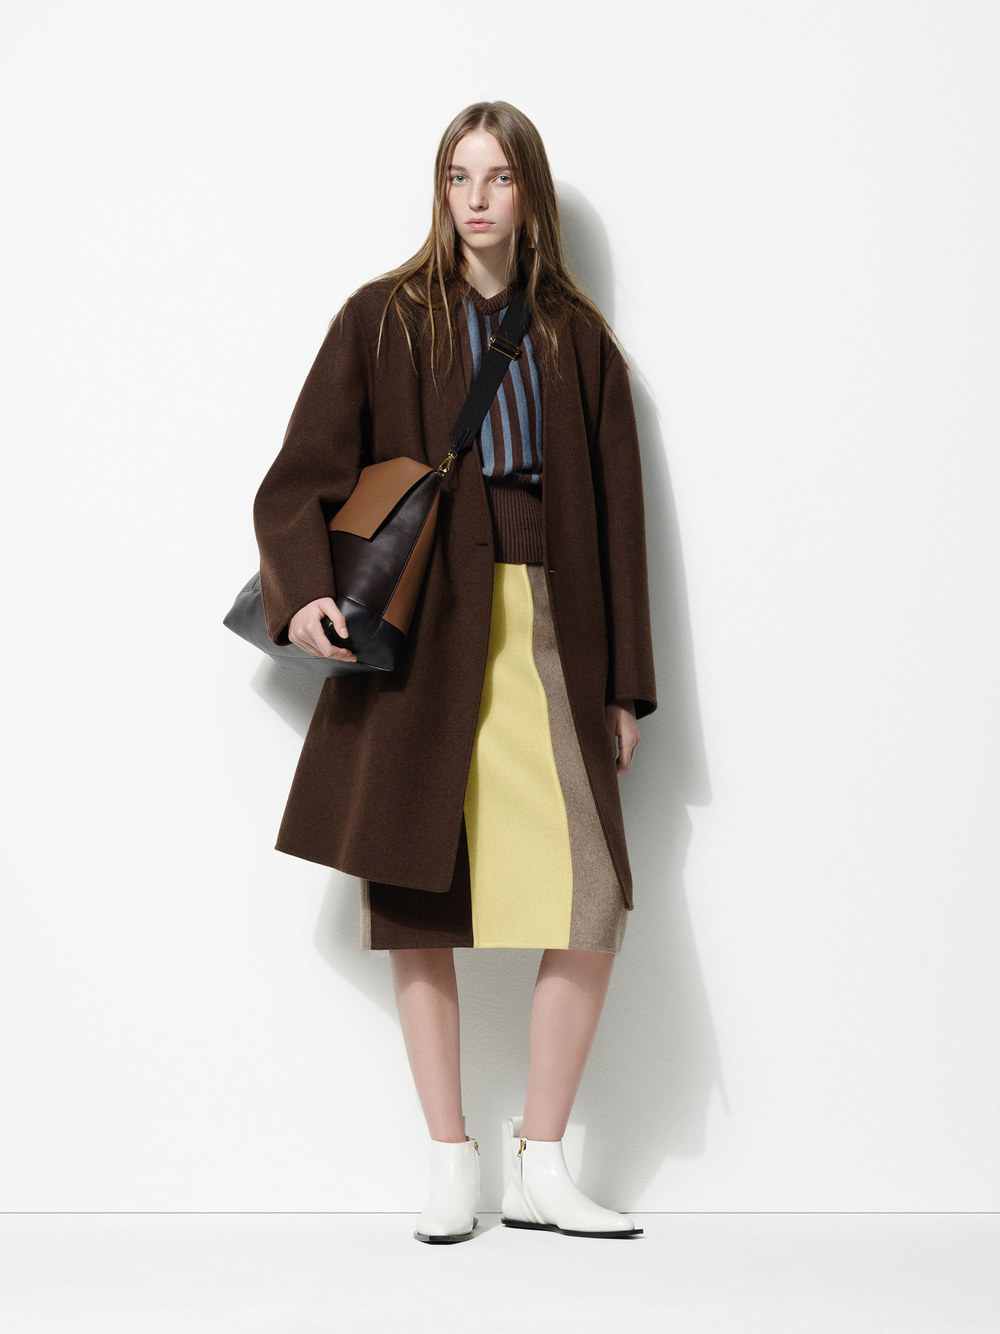 marni-pre-fall-2016-lookbook-19.jpg